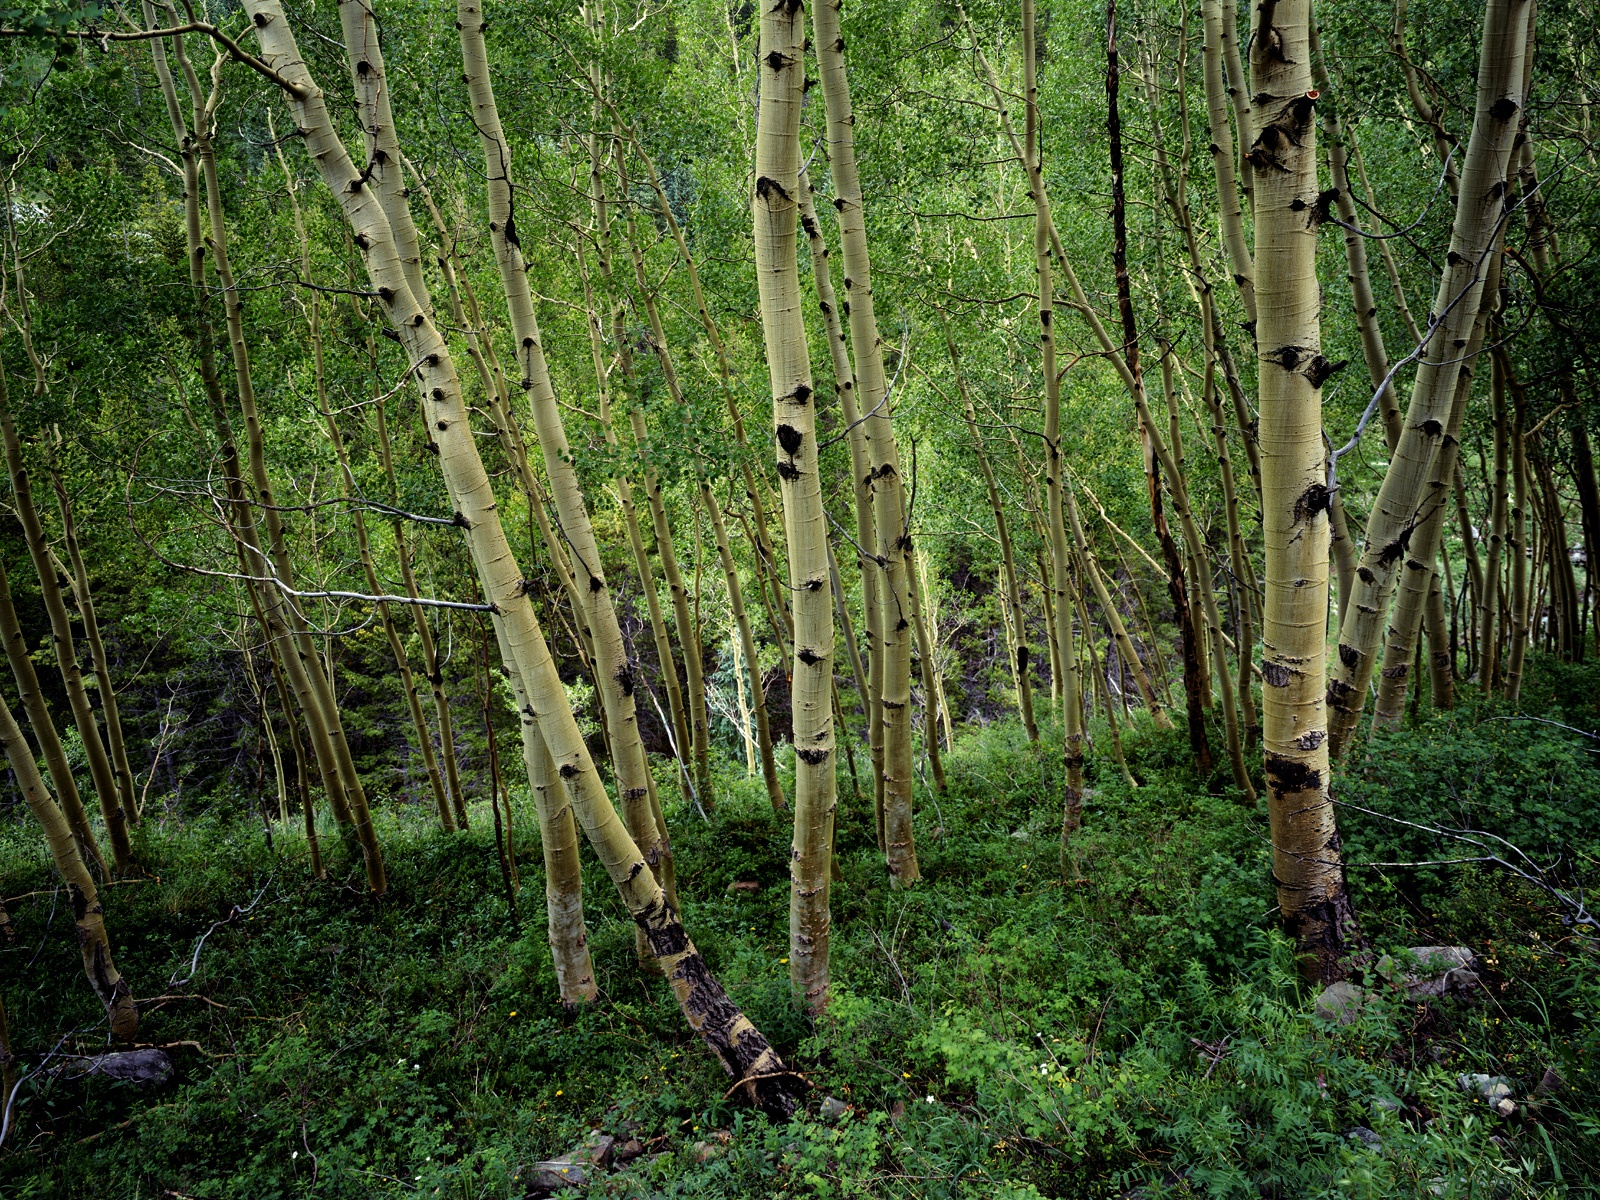 birch forest wallpapers birch forest stock photos